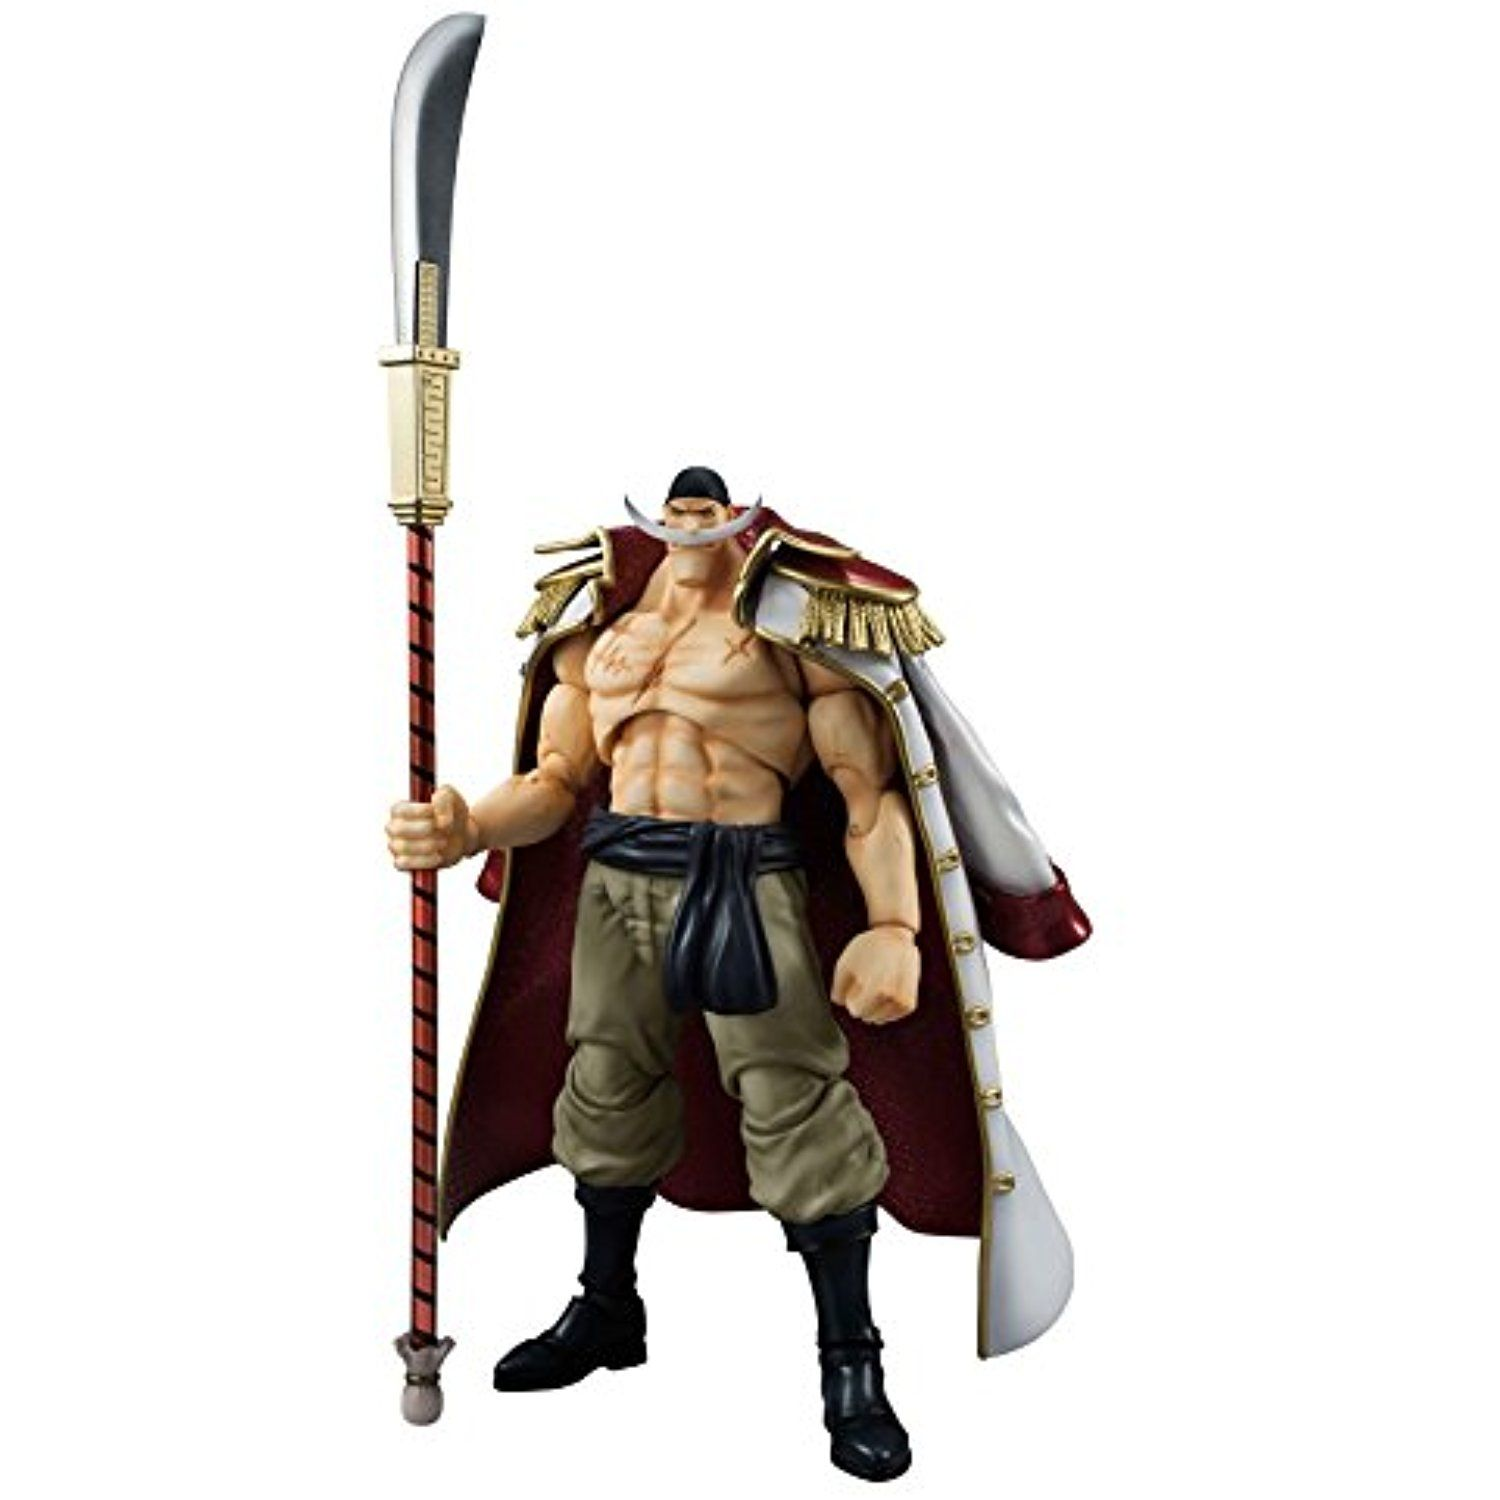 Variable Action Heroes One Piece White Beard Edward Newgate Action Figure VAH